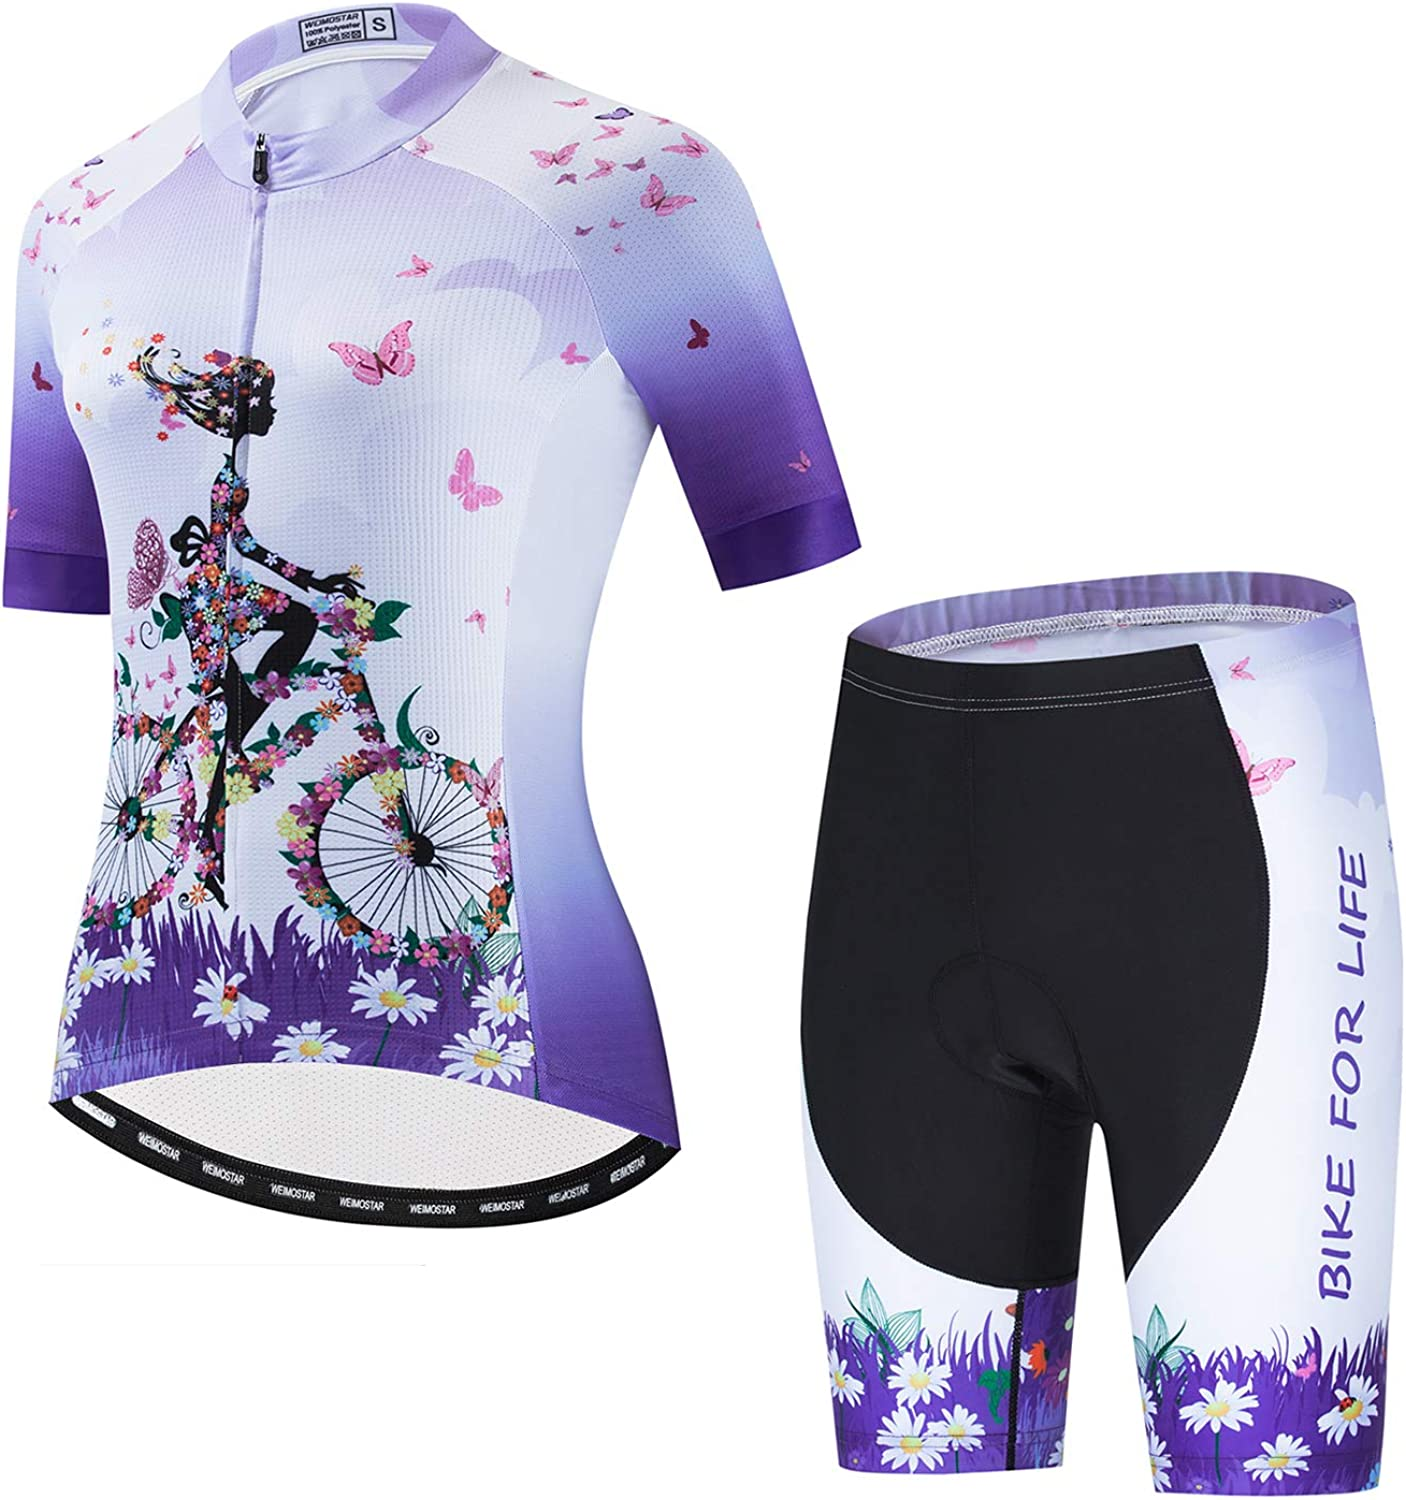 Women's Cycling Special Campaign Factory outlet Jersey Short Sleeve with Shorts Padded Quick-Dry